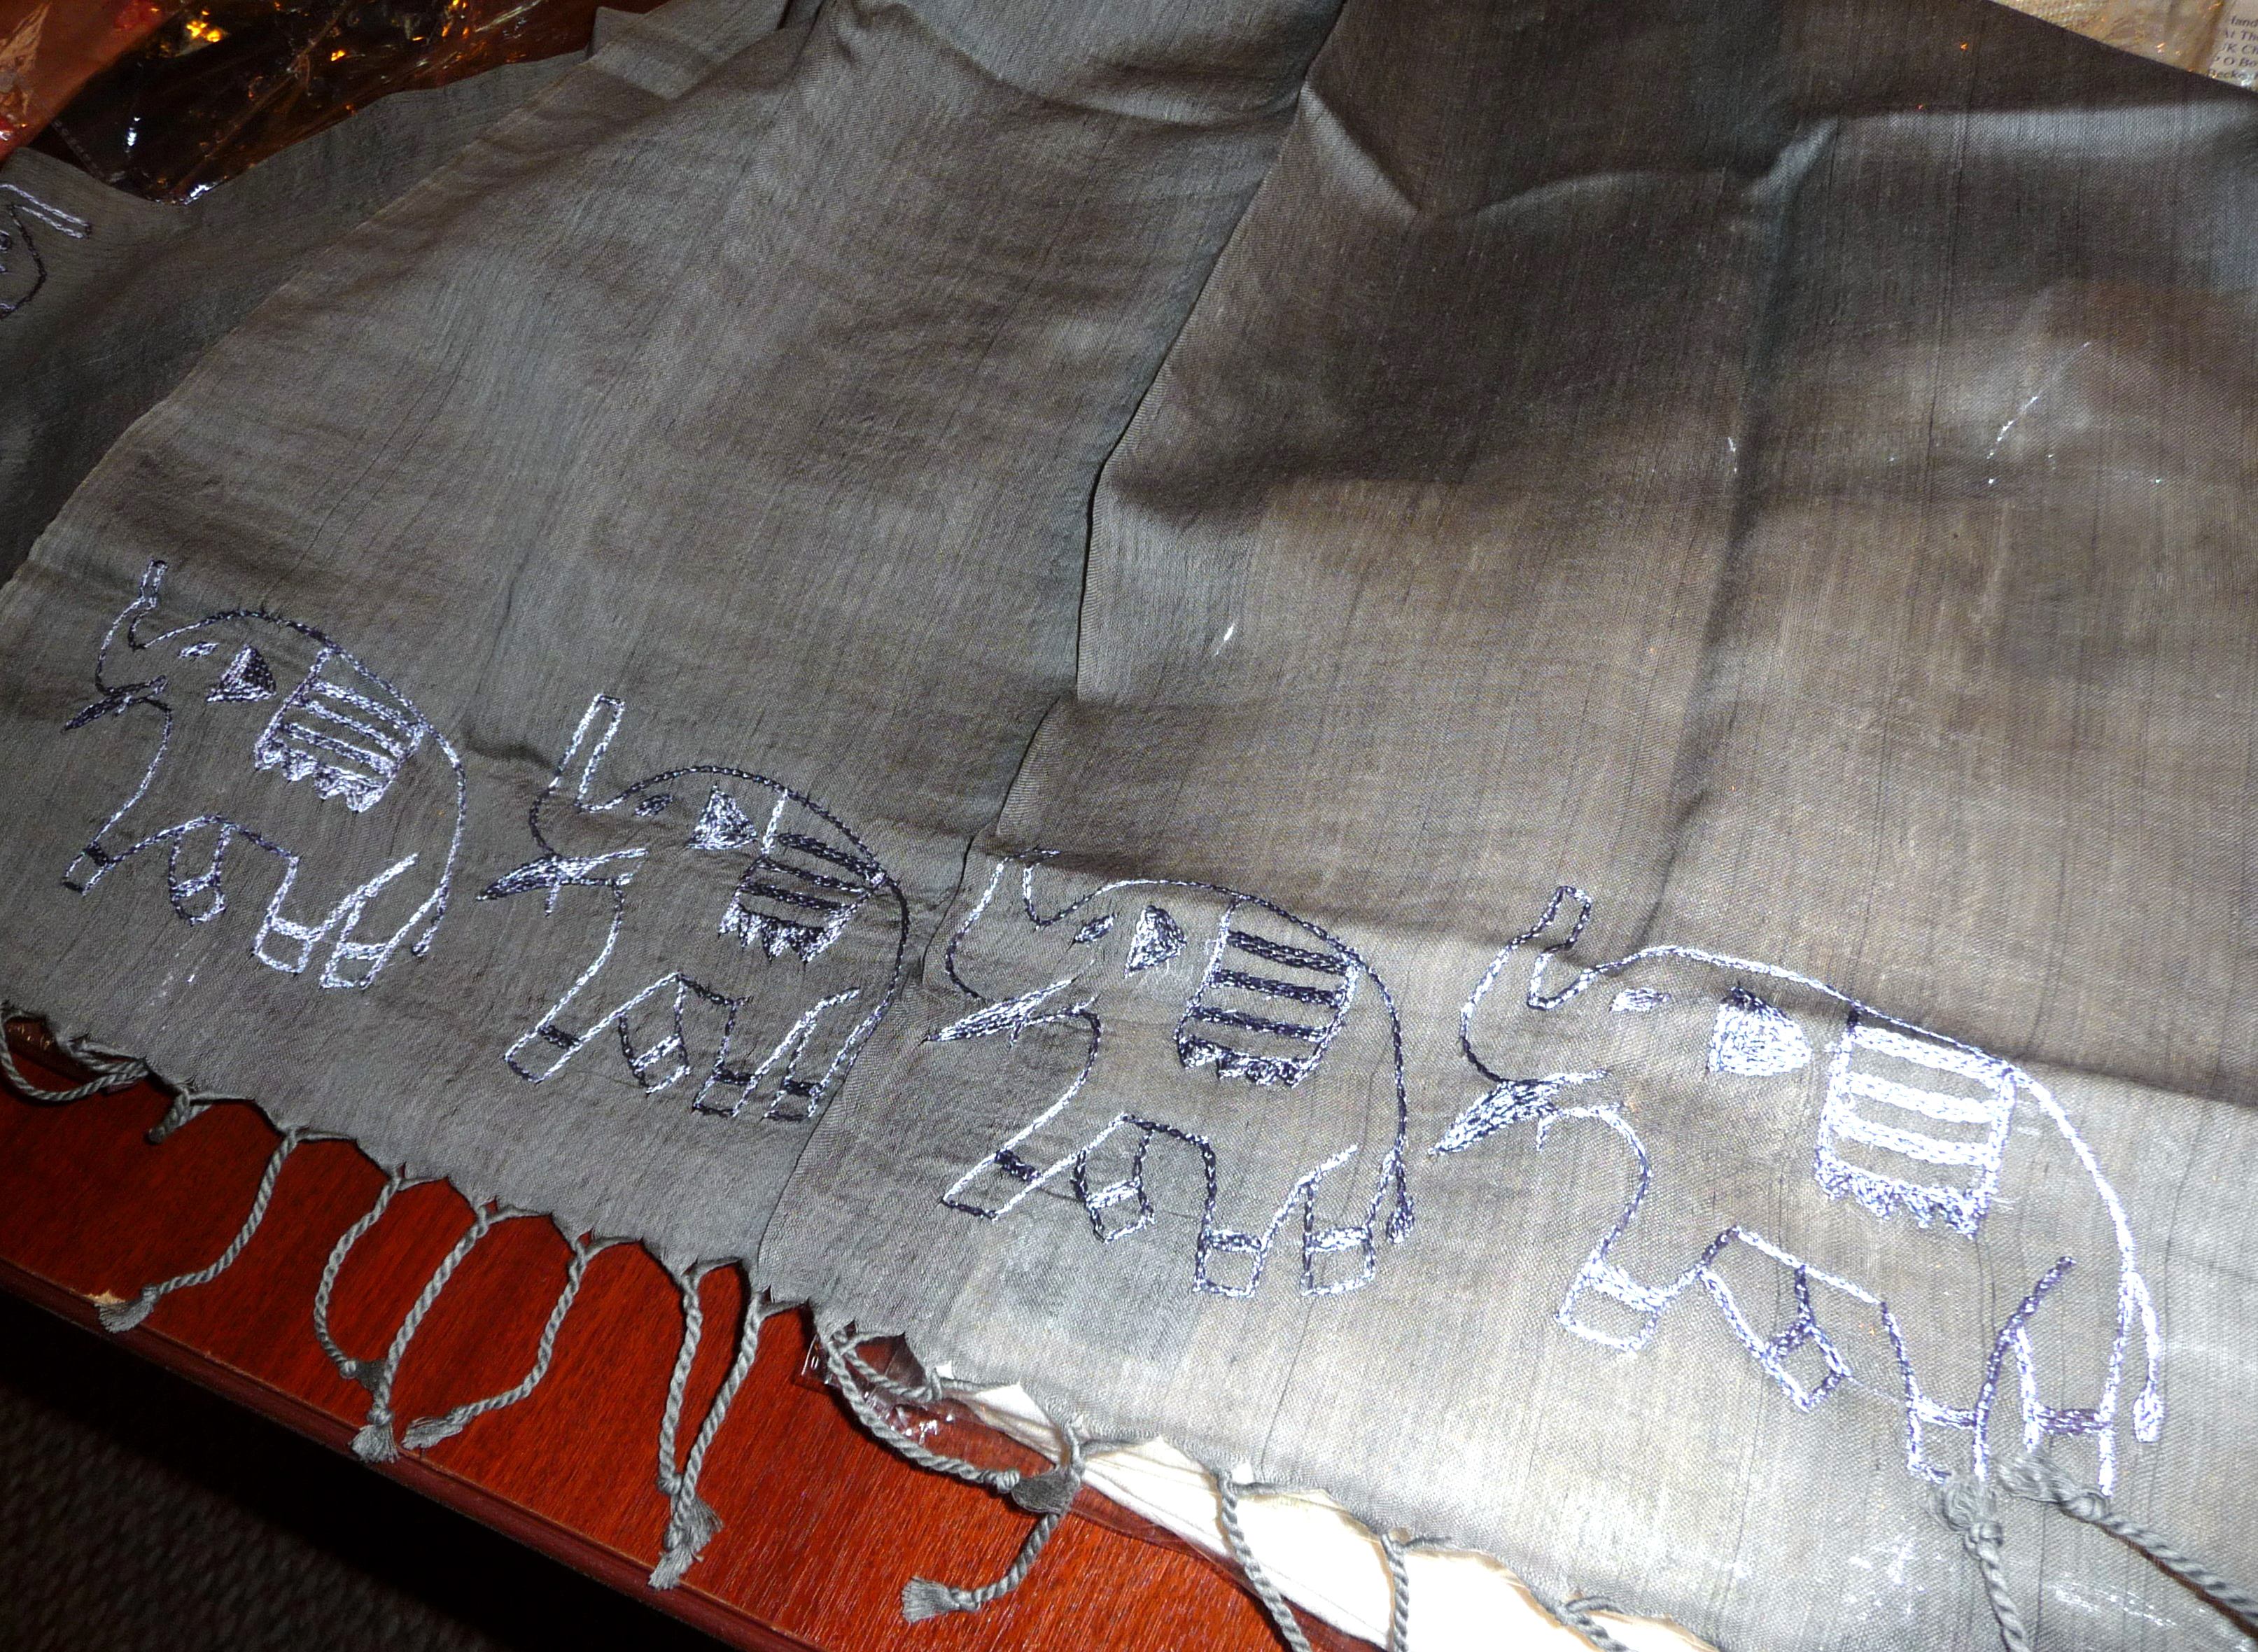 cotton/silk mixture scarf with embroidered elephants. Charcoal is used to dye this colour